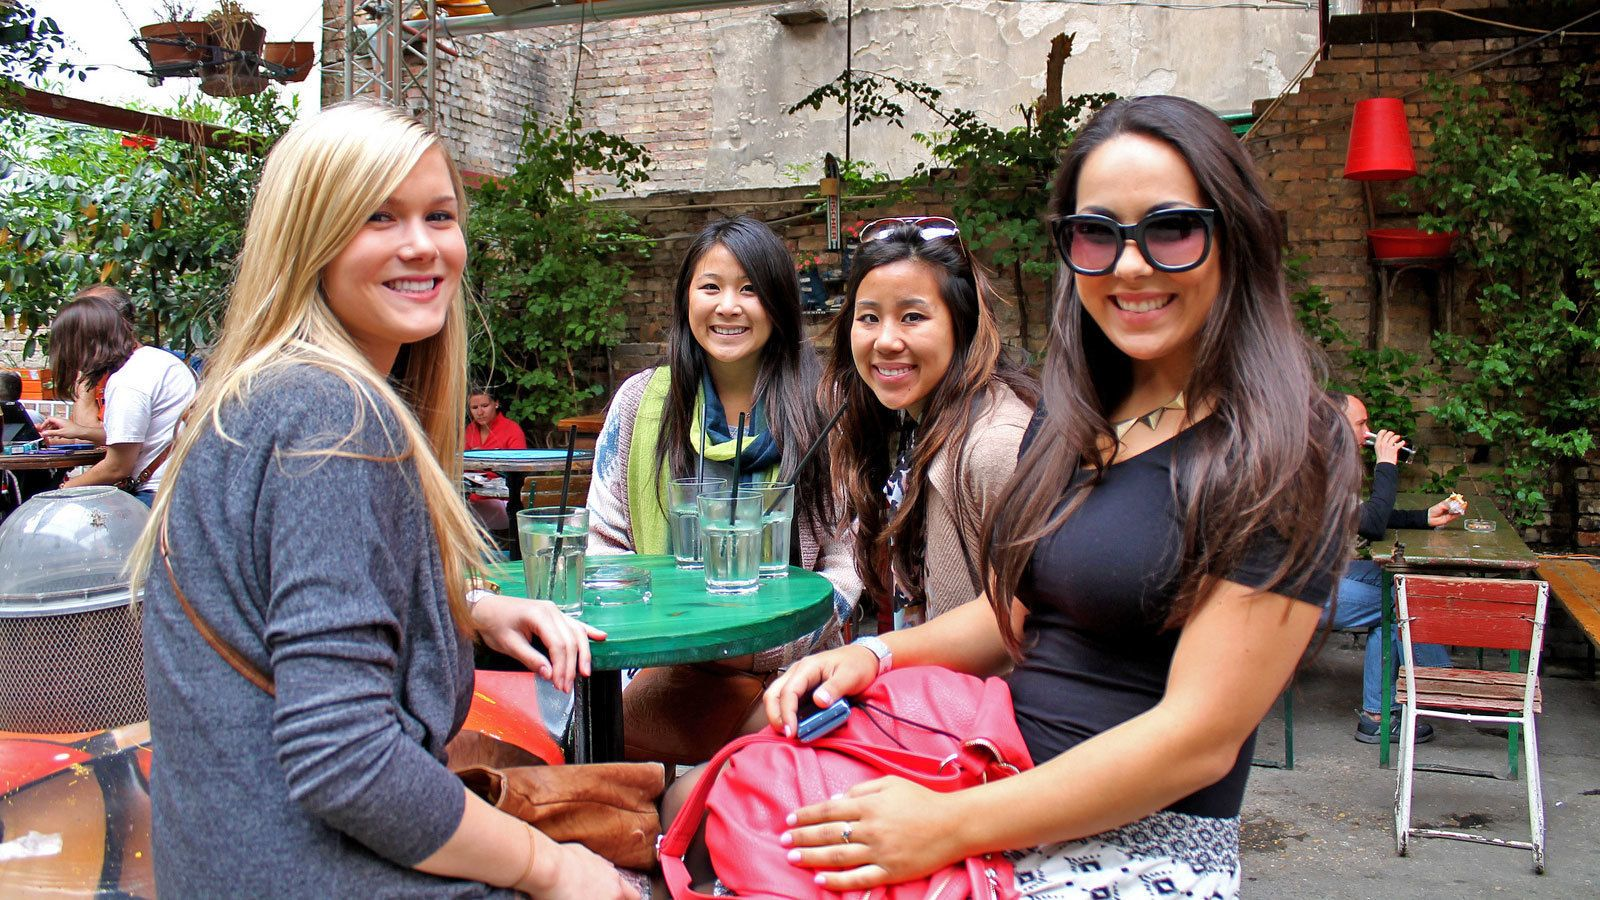 Group of women at an outdoor cafe in Budapest